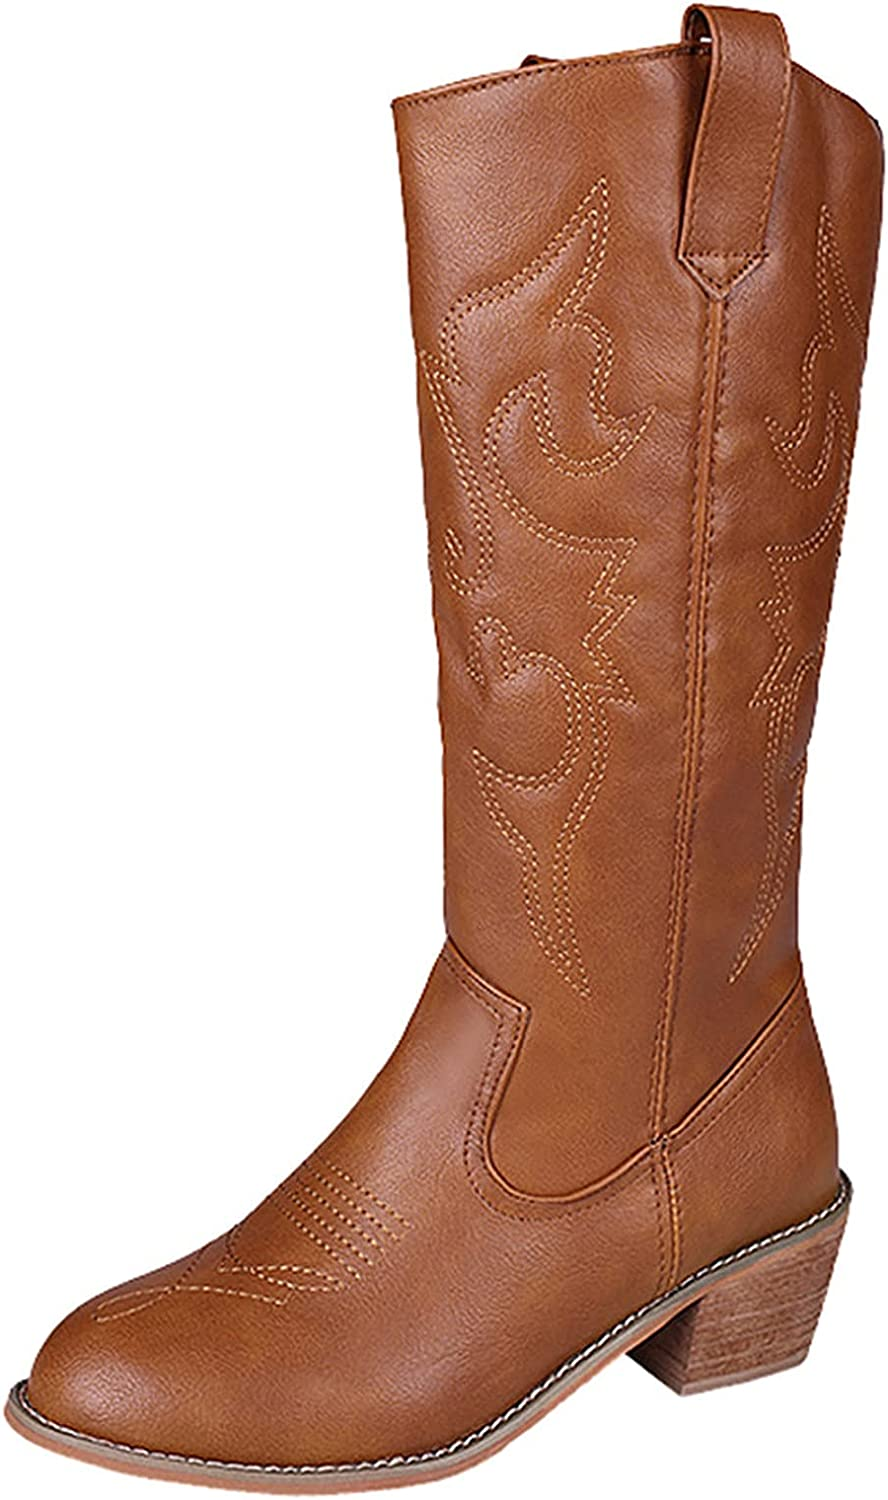 Fullwei Boot for Women Mail order cheap Vintage Cowboy NEW before selling Toe Cowgirl Pointed